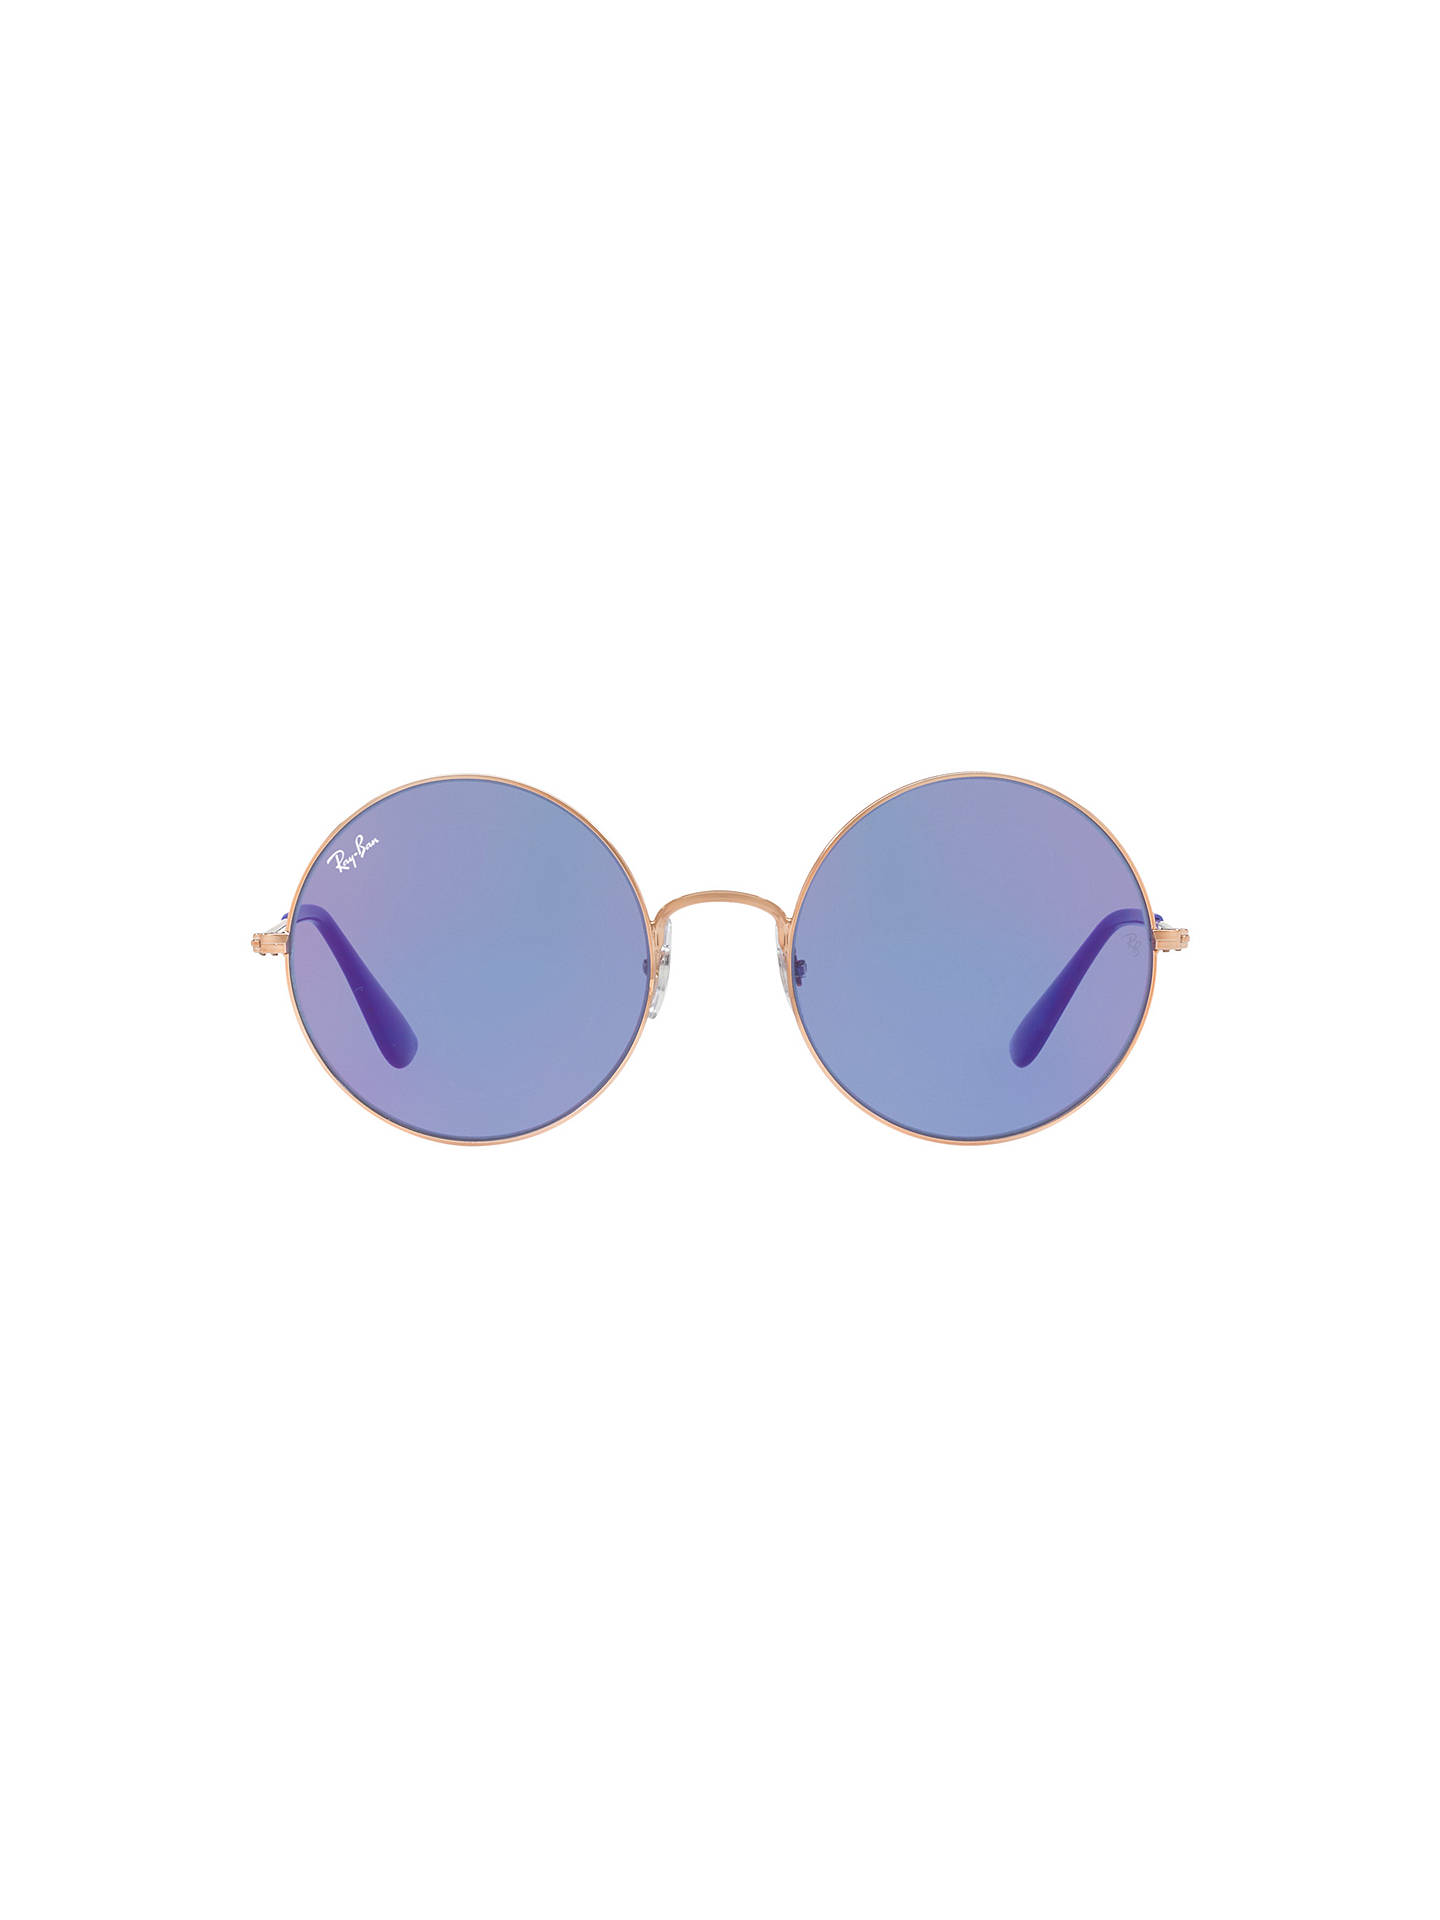 BuyRay-Ban RB3592 Ja-Jo Round Sunglasses, Gold/Lilac Online at johnlewis.com